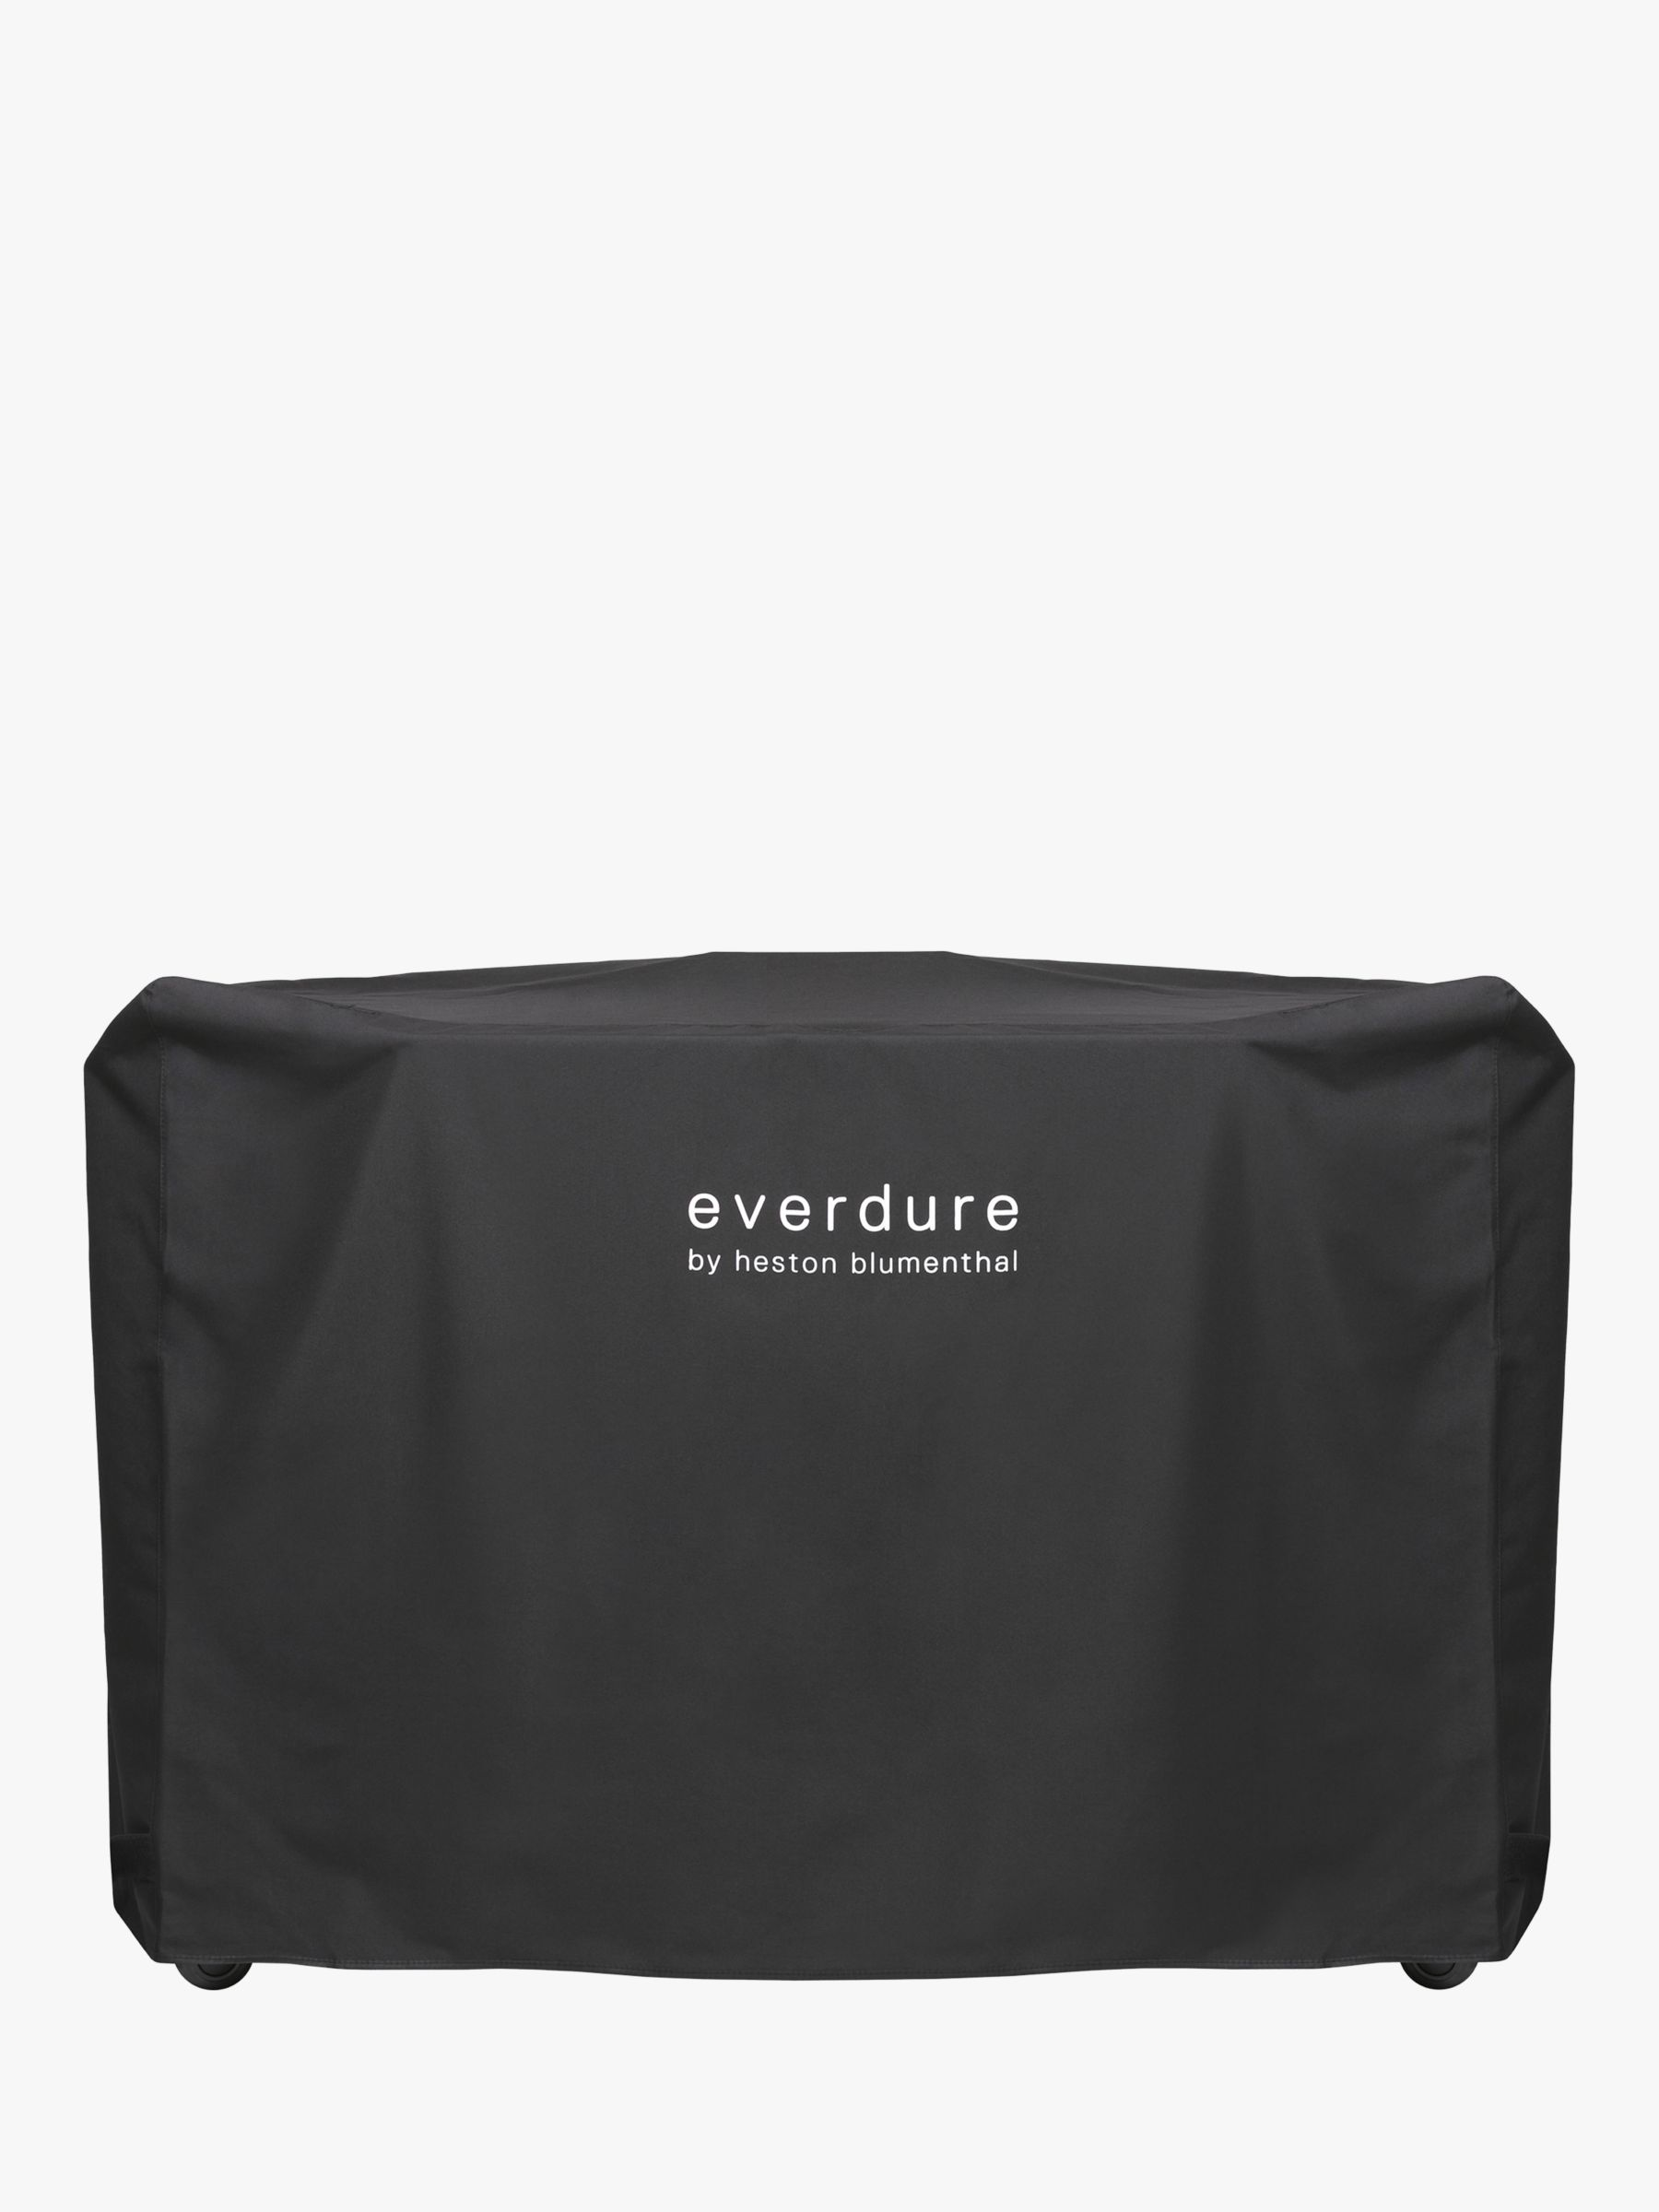 Charcoal Bbq Everdure By Heston Blumenthal Hub Electric Ignition Charcoal Bbq Cover Graphite